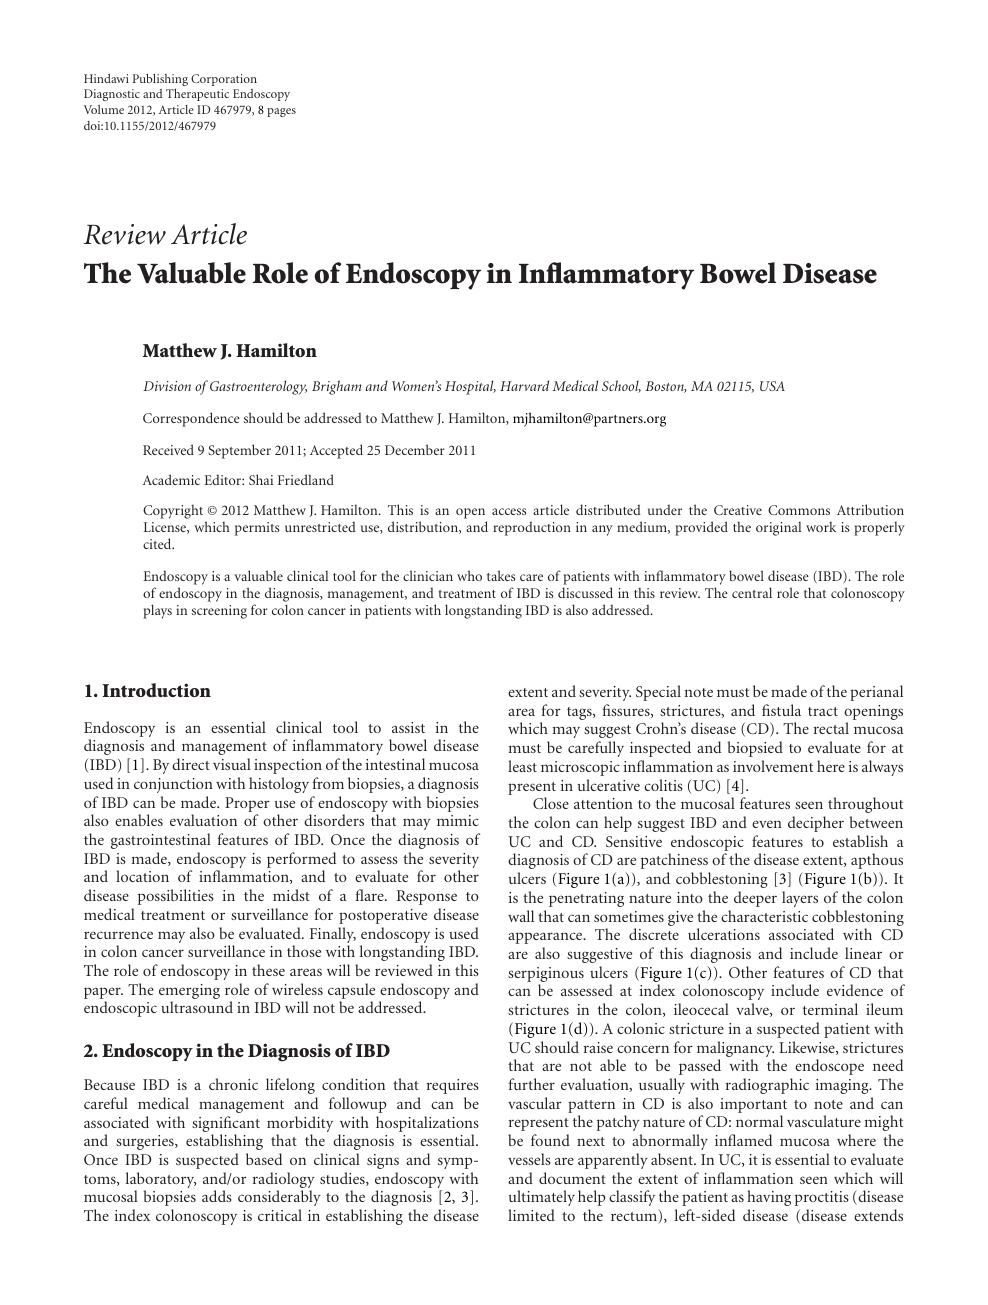 The Valuable Role of Endoscopy in Inflammatory Bowel Disease